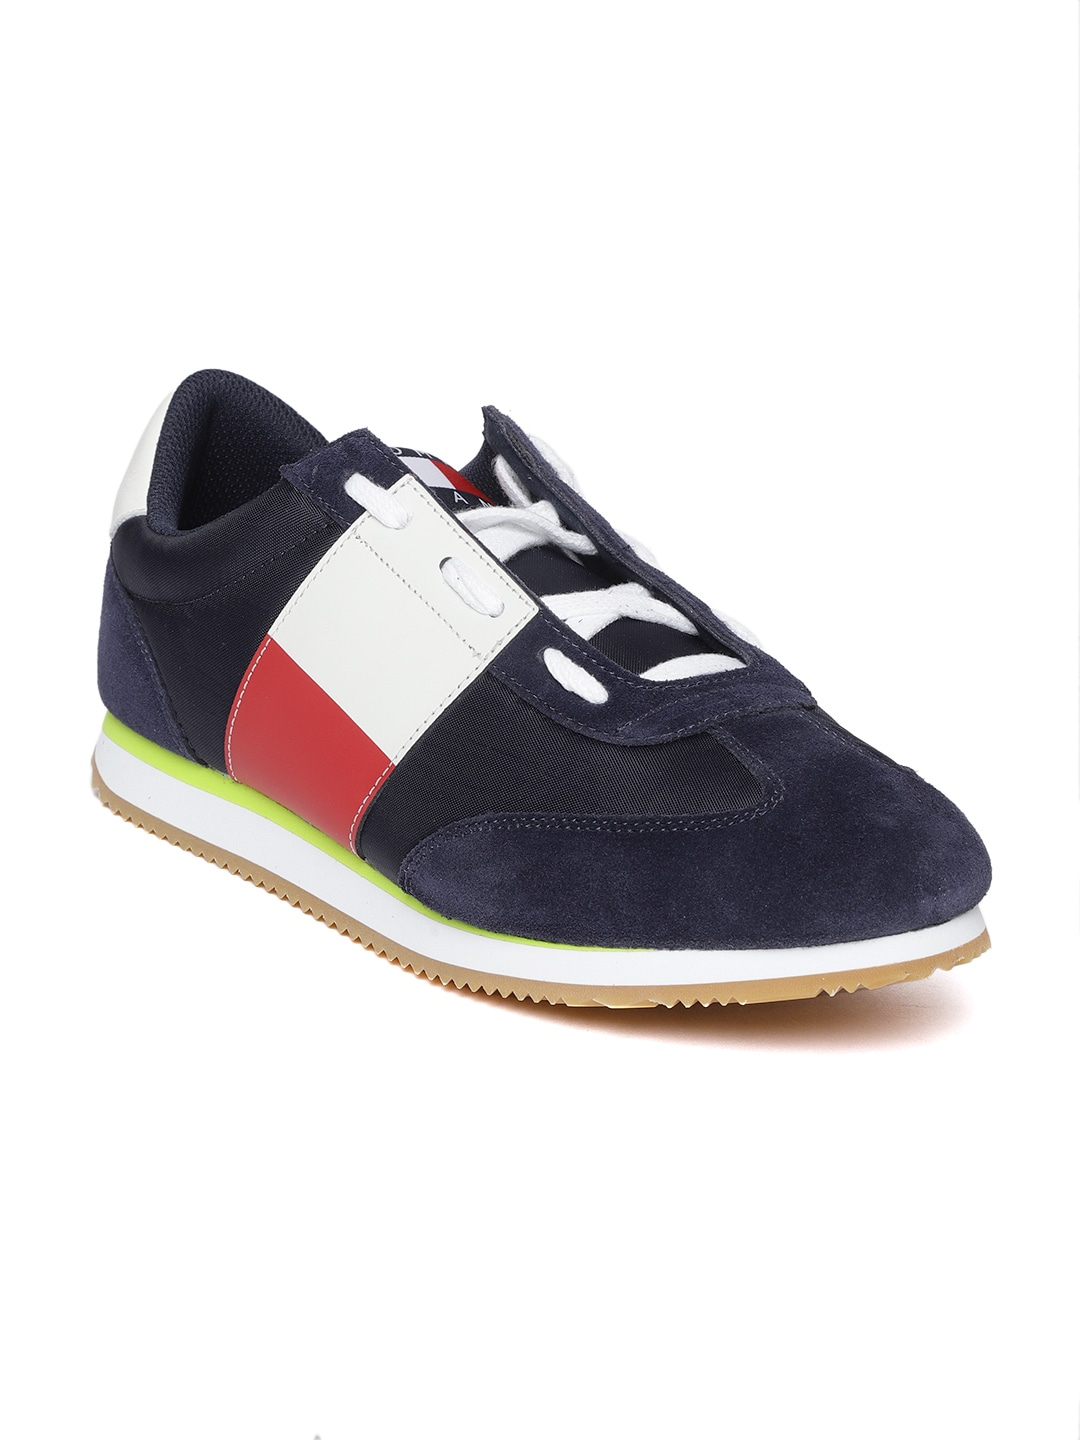 7e063d3e2 Tommy Hilfiger Shoes - Buy Tommy Hilfiger Shoes Online - Myntra